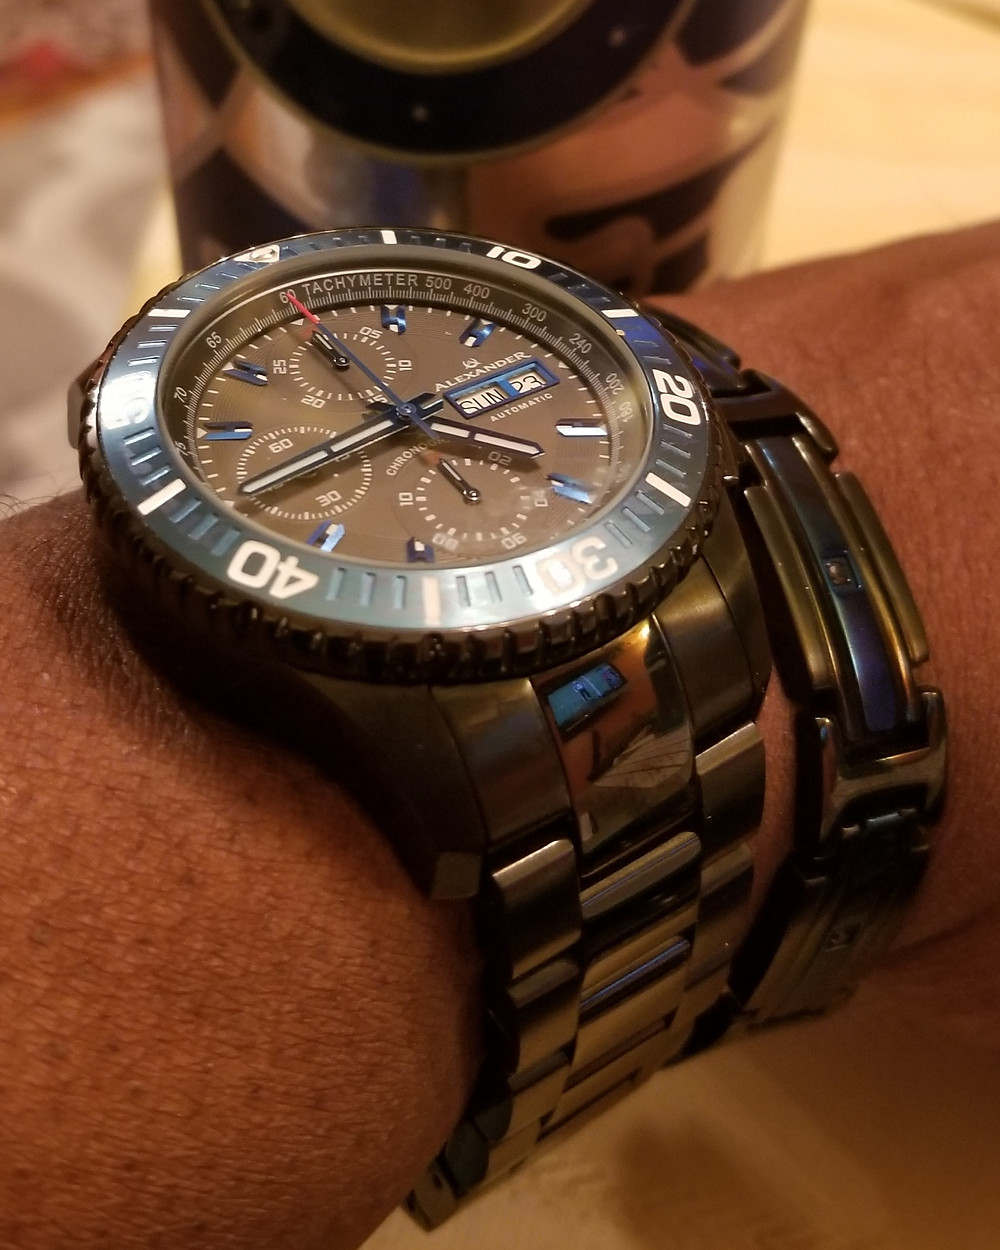 WOTD wrist-shot of the Alexander Olyn, A420, Swiss Valjoux 7750, Automatic Chronograph, paired with a flat bracelet, designed by INOX.